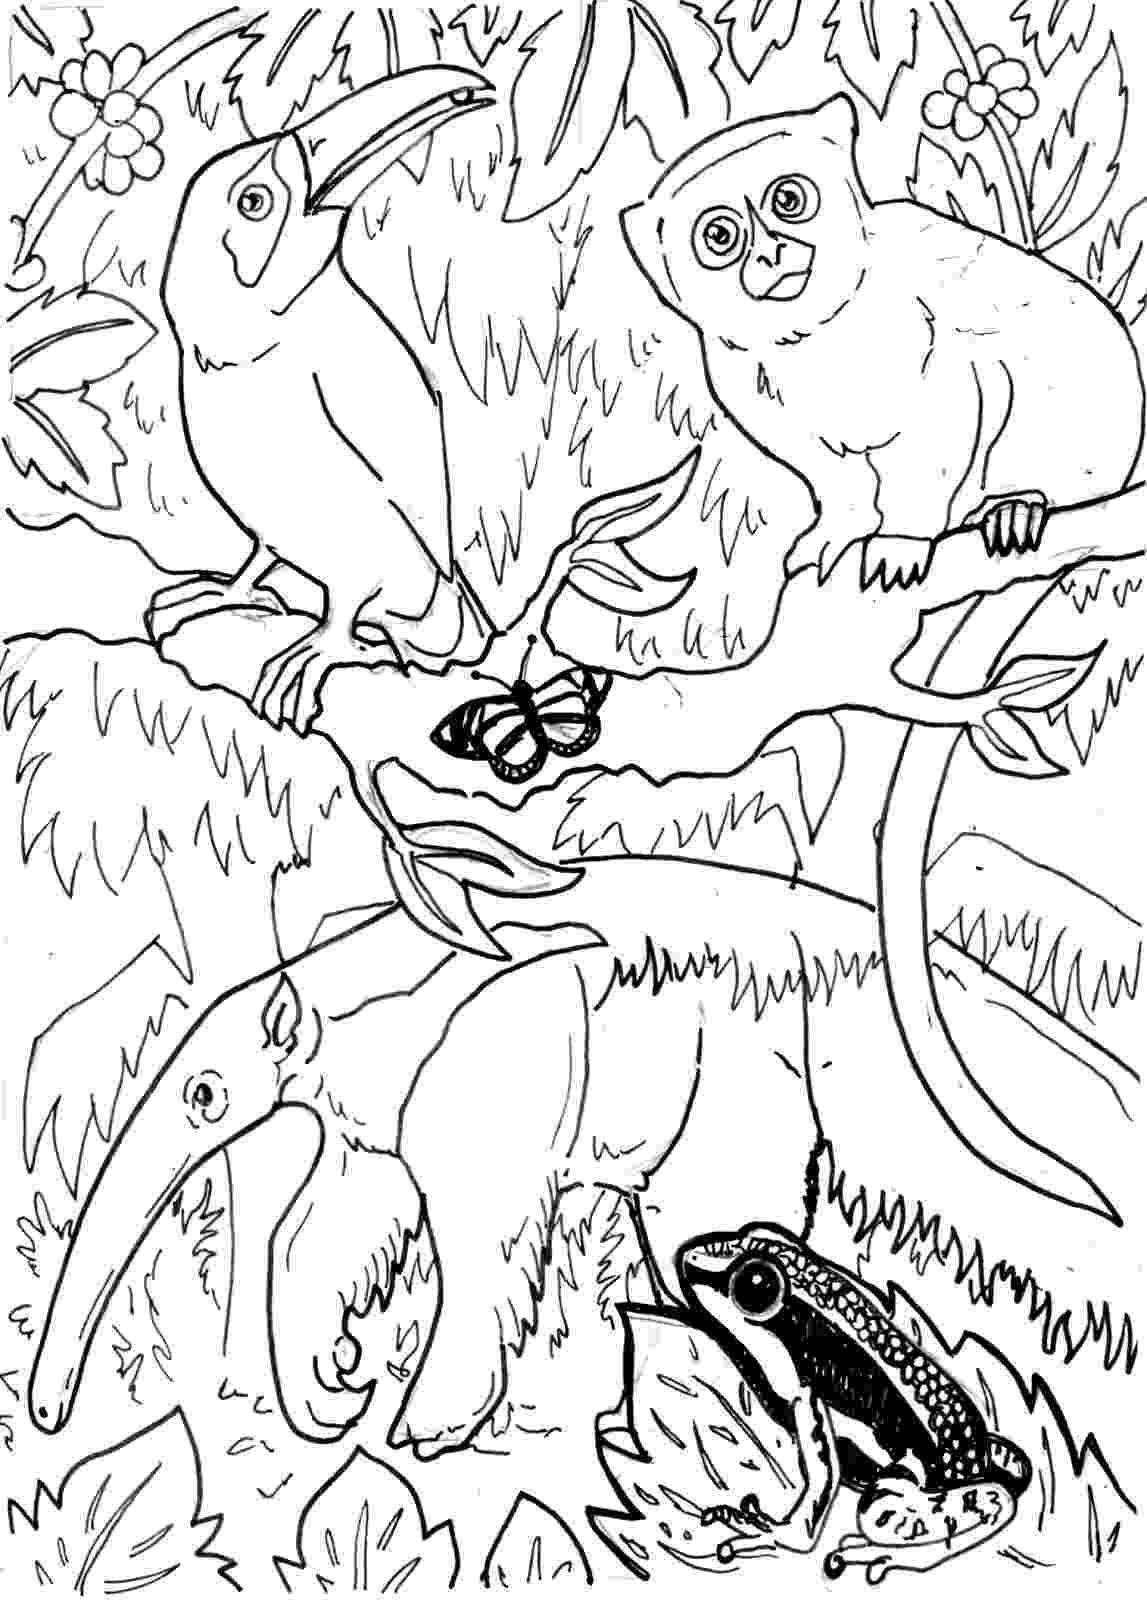 pictures of rainforest animals to color amazon rainforest animals coloring pages get coloring pages rainforest of color to pictures animals